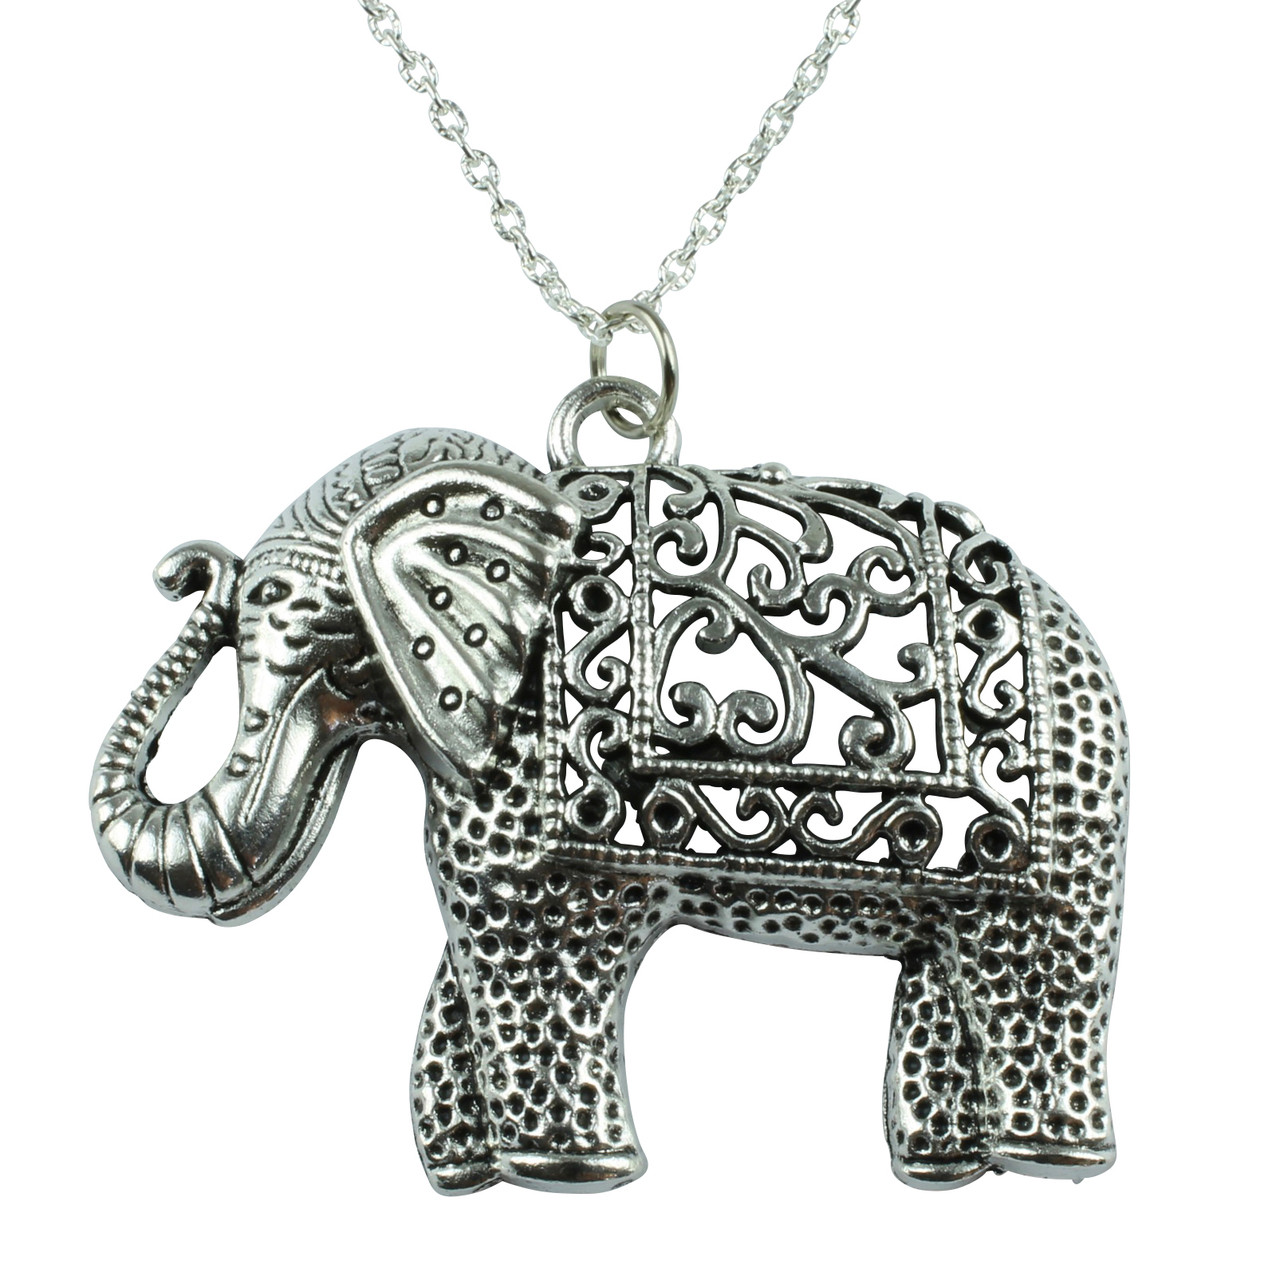 jewelry elephant listing fullxfull chain large charm pewter tibetan long pendant ornately silver il detailed necklace animal gift carved short present birthday